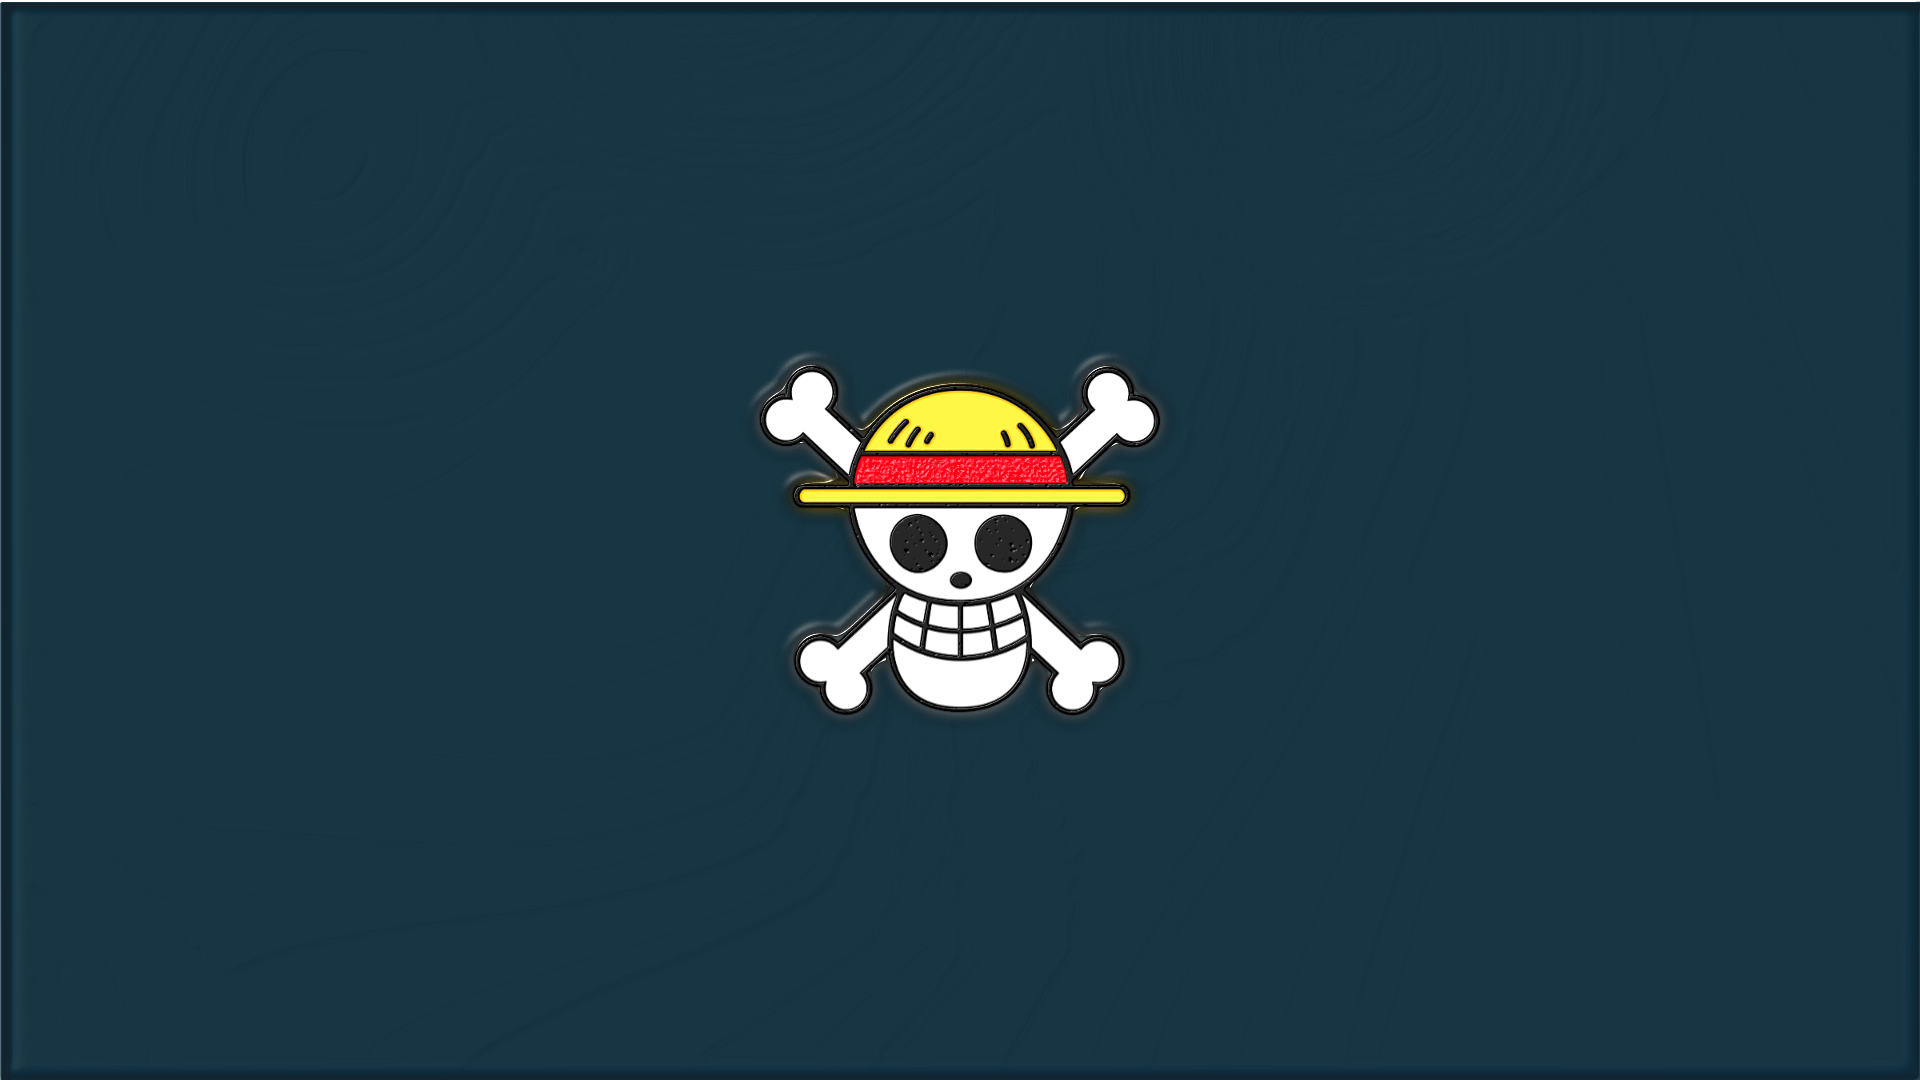 One Piece Logo Wallpapers Top Free One Piece Logo Backgrounds